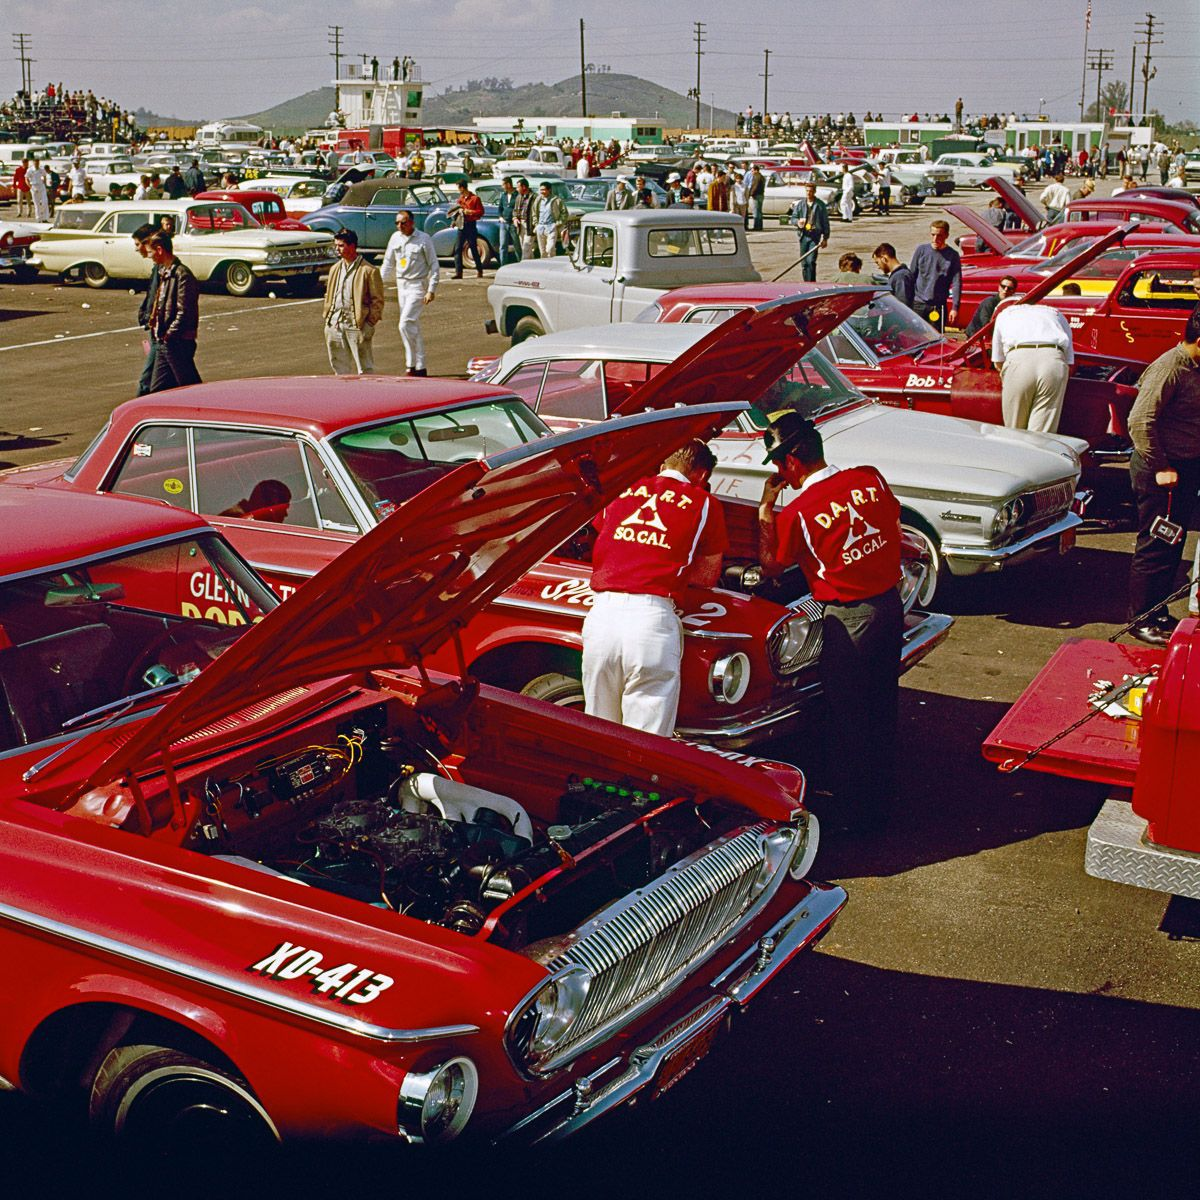 Racers work on a 1962 Dodge Dart in the pit at the NHRA Winternationals Drag Race..jpg